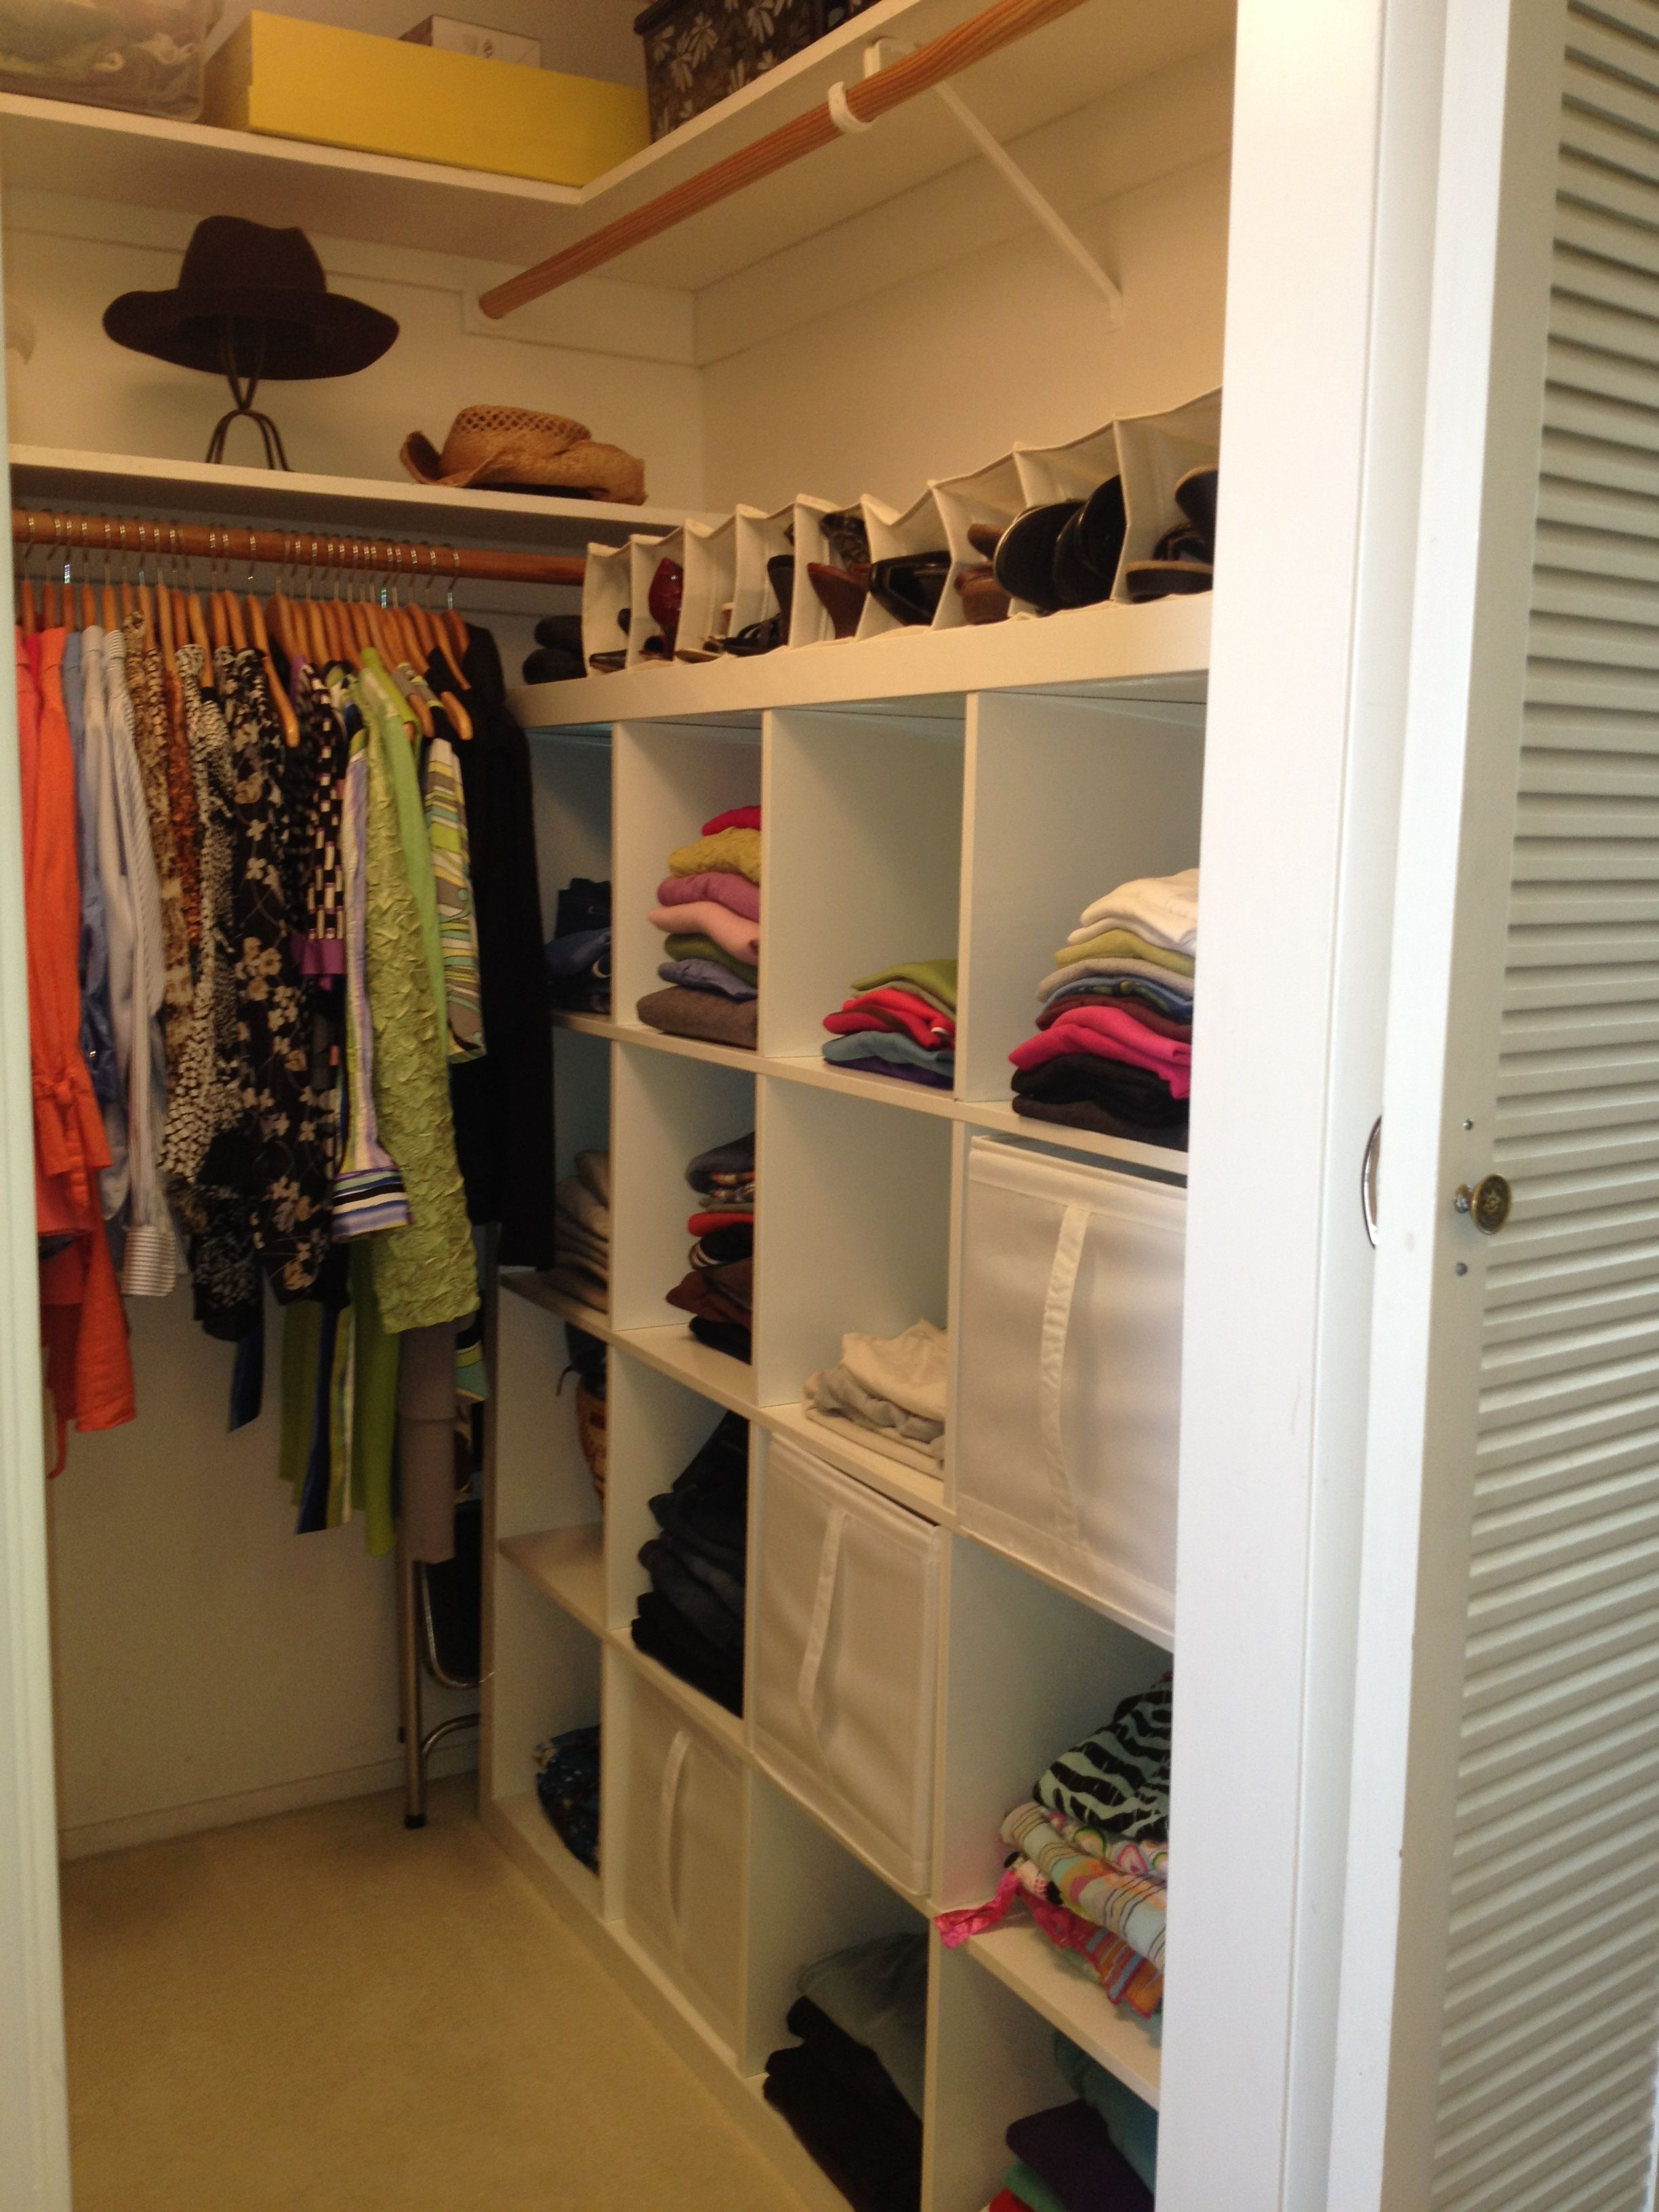 Furniture walk in closets ideas small organizer software tool organization storage master door - Closet storage ideas small spaces model ...